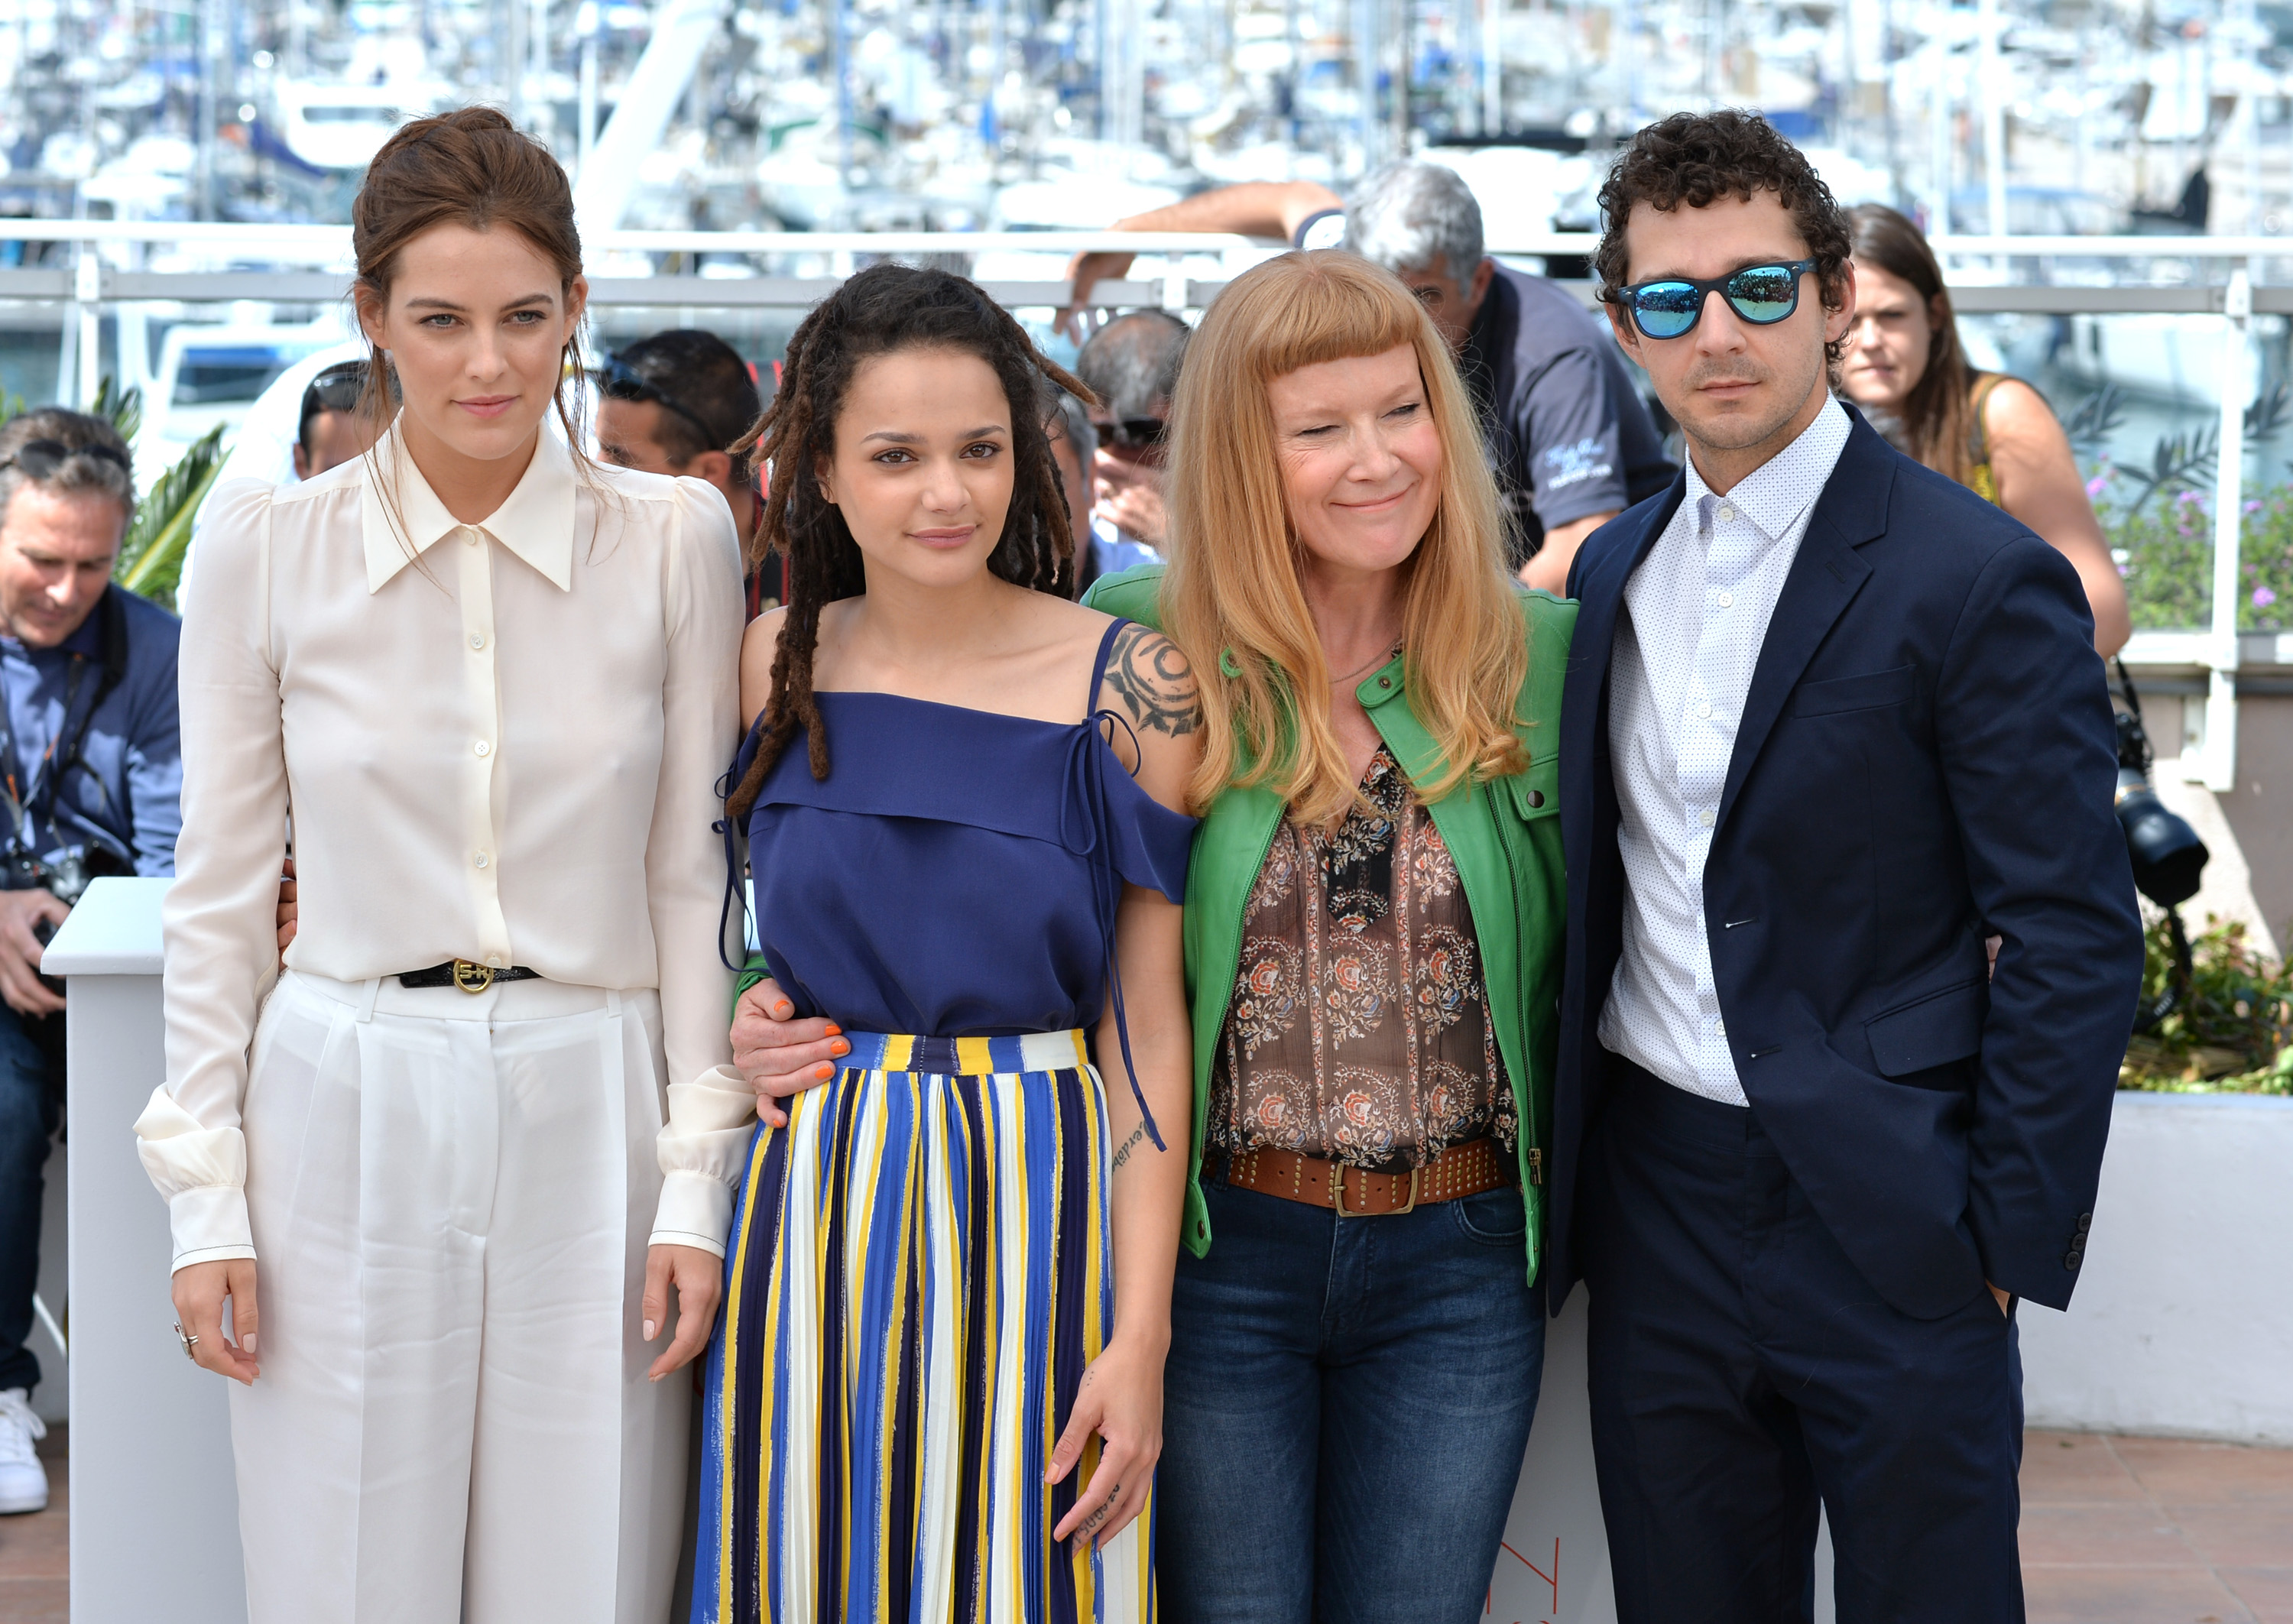 Riley Keough, Sasha Lane, Andrea Arnold, Shia LaBeouf 'American Honey' Photocall - The 69th Annual Cannes Film Festival, Cannes, France - 15 May 2016